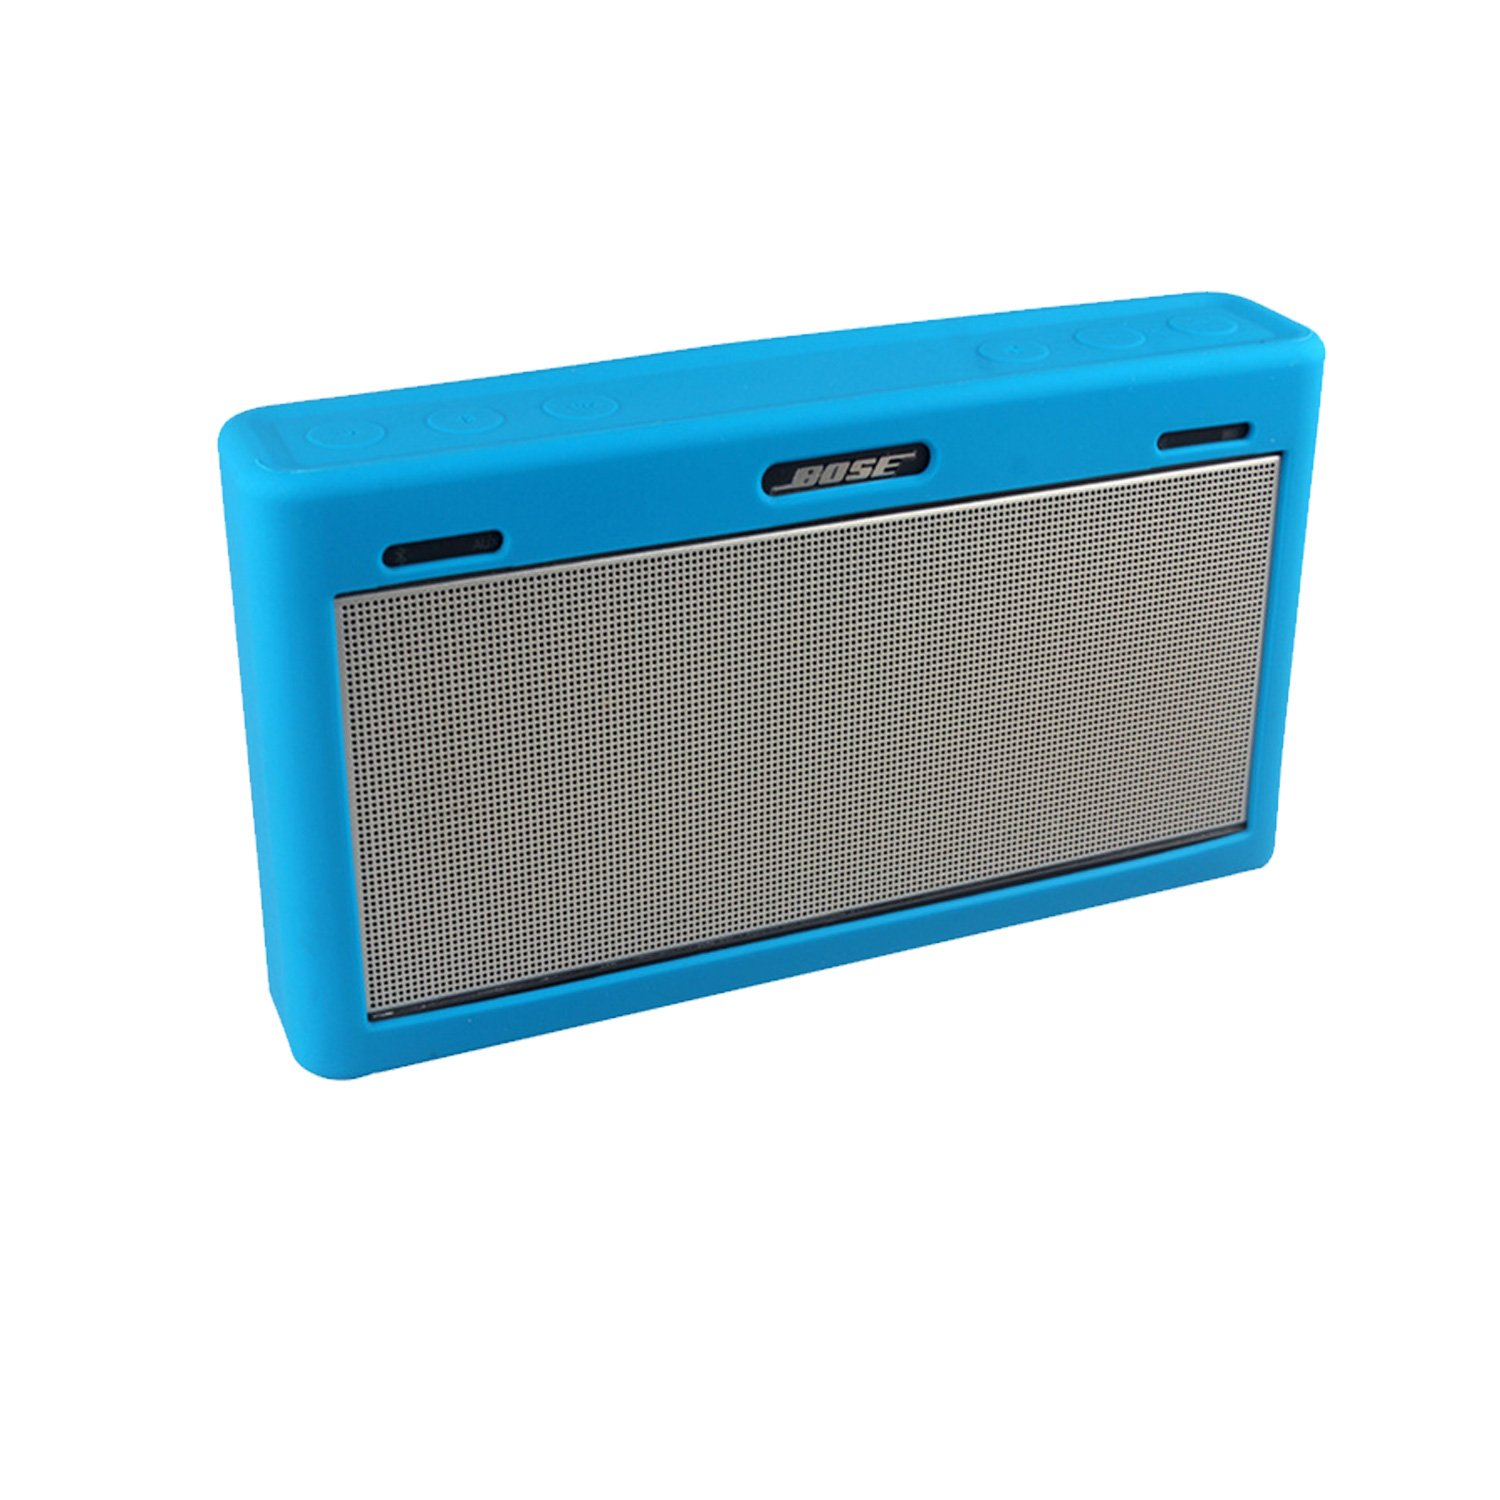 Portable Durable Silicone Protective Cover for Bose Soundlink 3 Bluetooth Wireless Speaker (Speaker is not Included)